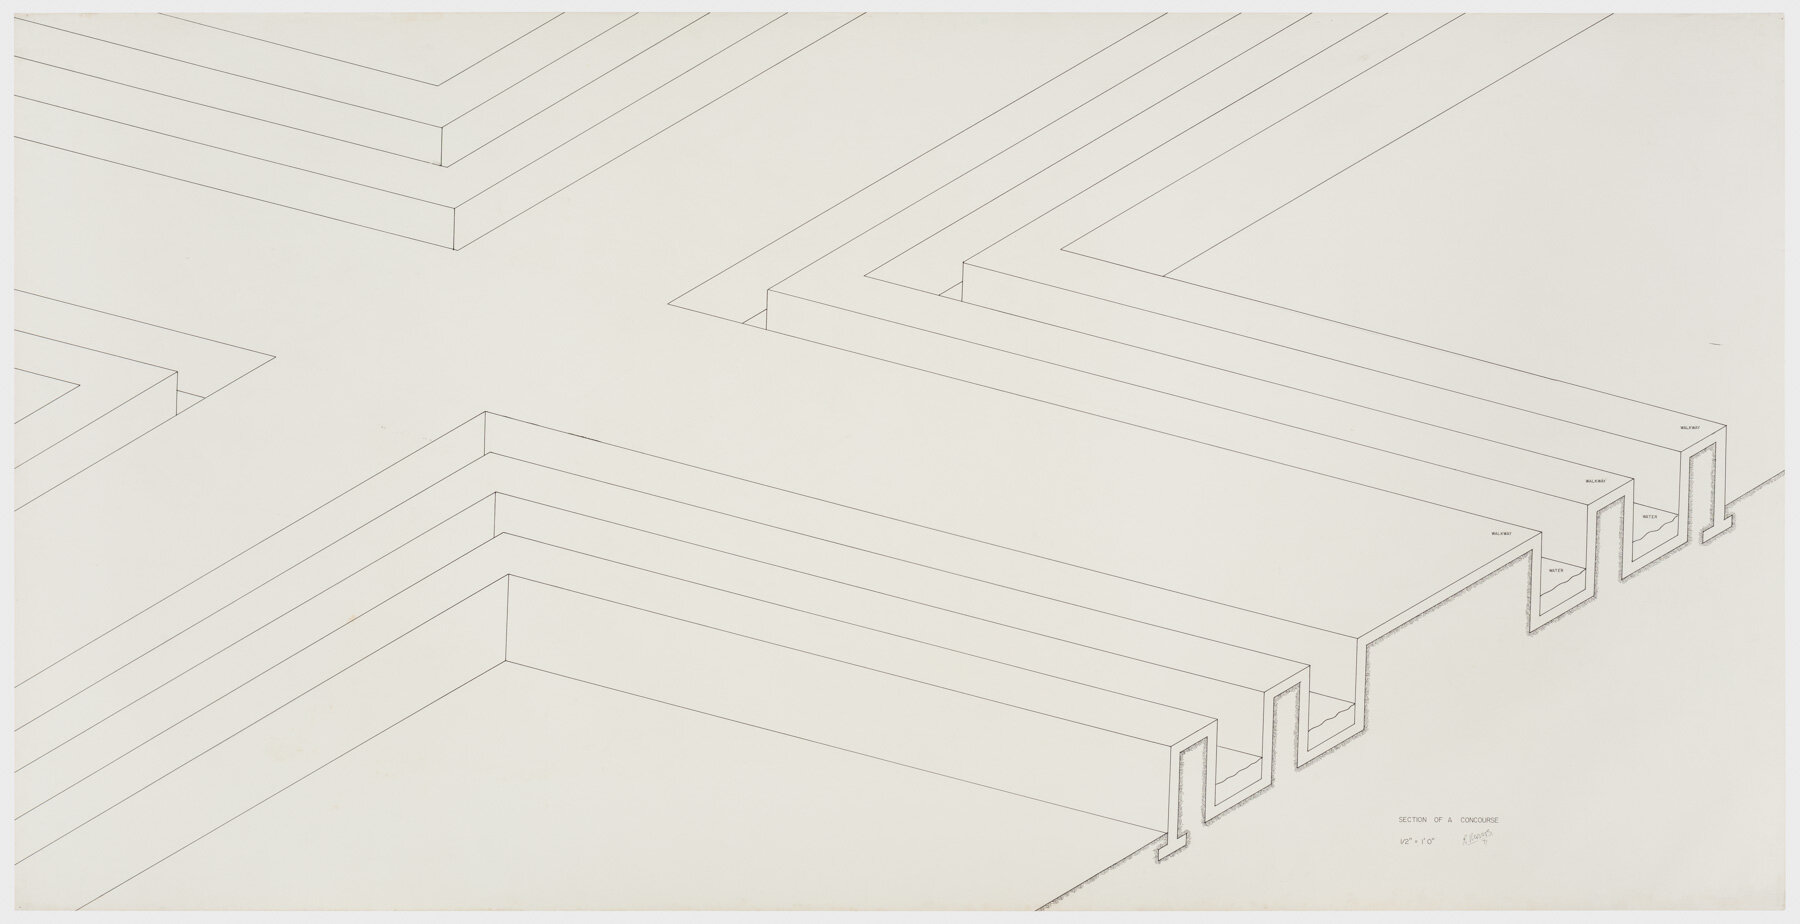 Robert Morris.  Section of a Concourse , 1971. Ink on paper, 42 x 83 in. (107 x 211 cm). Estate of Robert Morris, courtesy Castelli Gallery, New York. © 2019 The Estate of Robert Morris / Artists Rights Society (ARS), New York. Photo: Stan Narten